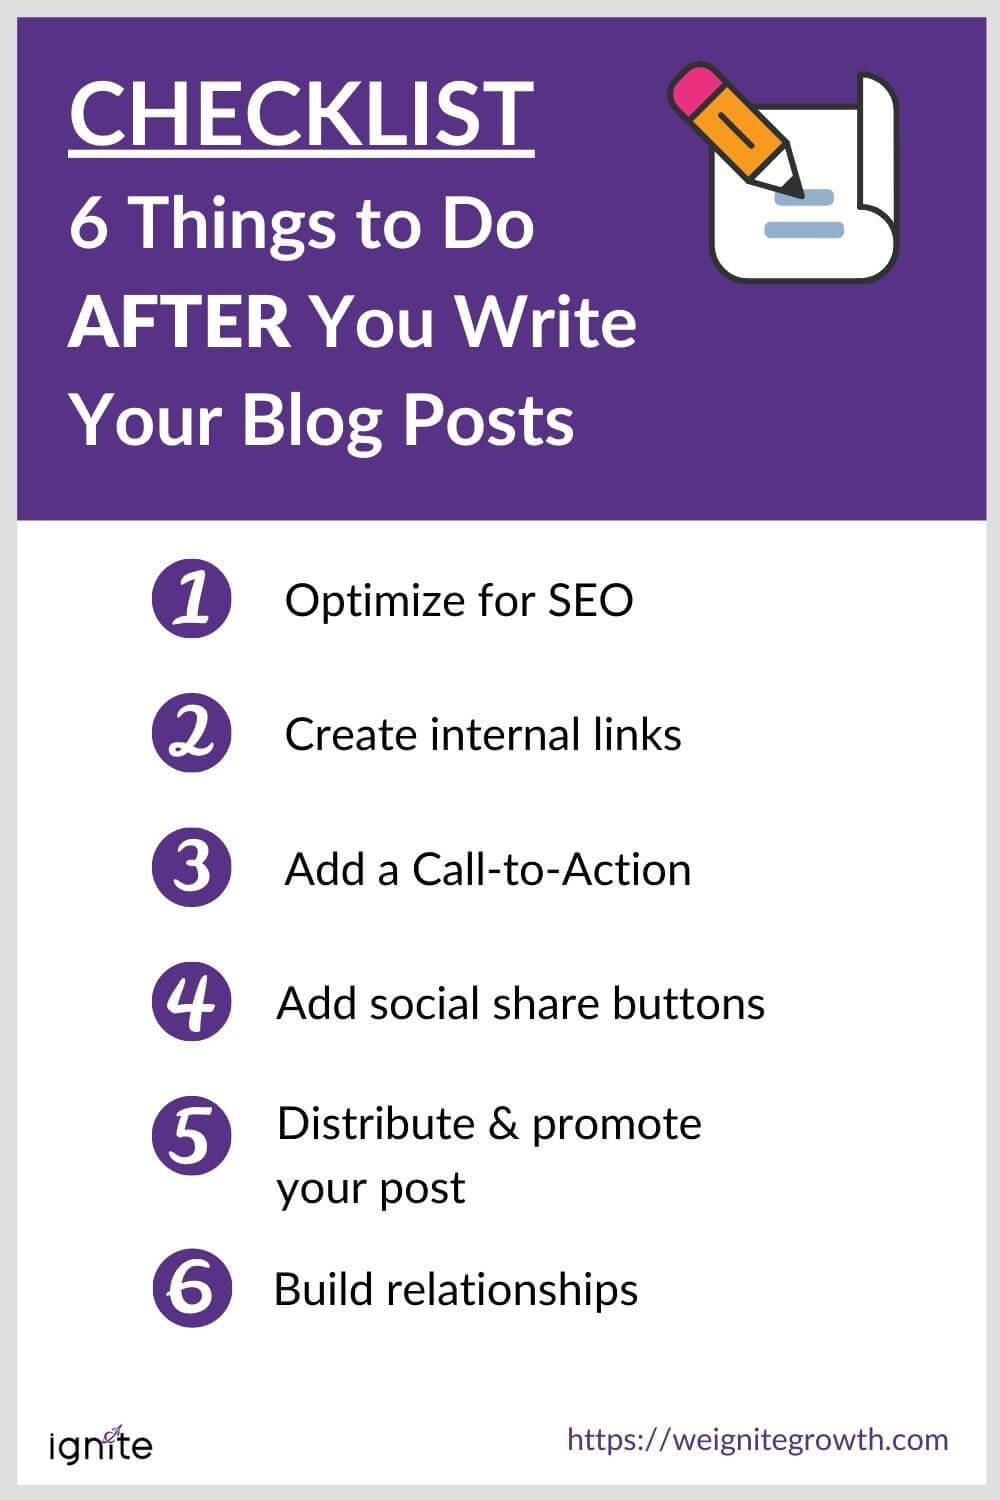 CHECKLIST 7 Things to Do AFTER You Write Your Blog Posts